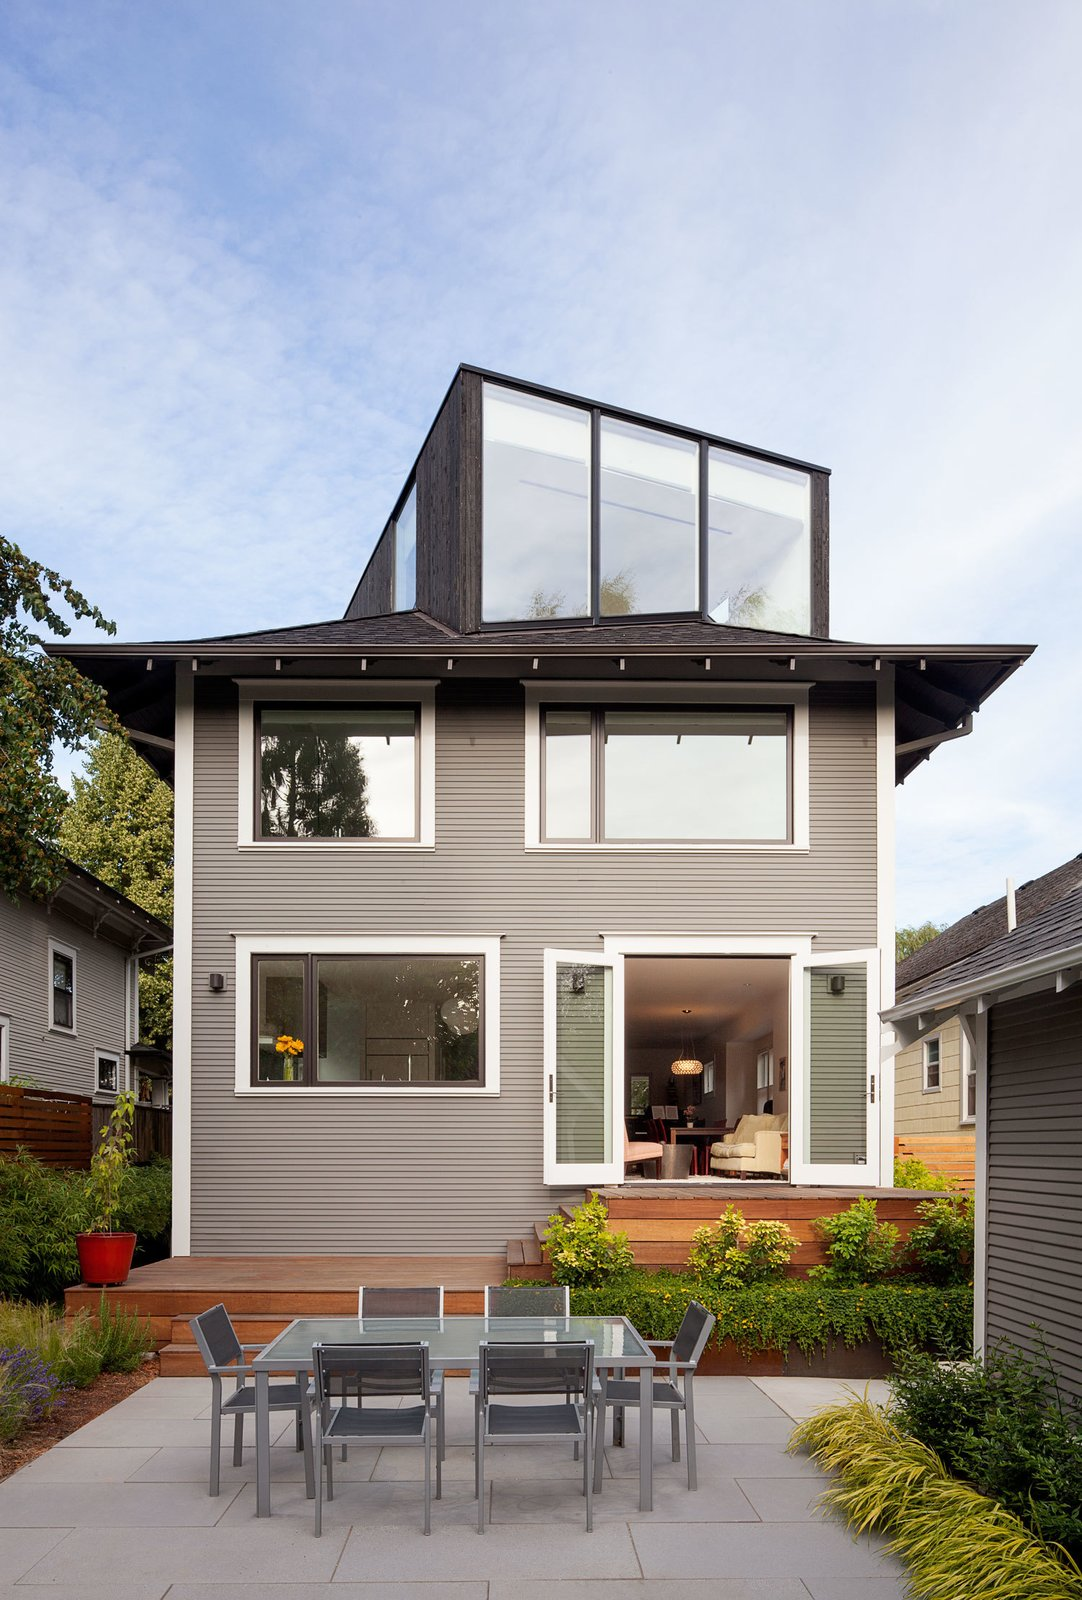 """Thomas Robinson of LEVER Architecture restored the exterior of the house in order to resurface the original wood facade, which had been covered up by vinyl siding at one point. They turned the unused attic into a """"FifthSquare"""": a box-like structure that acts as an office and mini-theater, complete with a ceiling-mounted projector and drop-down screen. The exterior of the extension is clad with charred cedar, which integrates smoothly into the asphalt shingle roof.  house pics by Joseph Fields from Dwell Home Tours Makes its Way to Portland"""